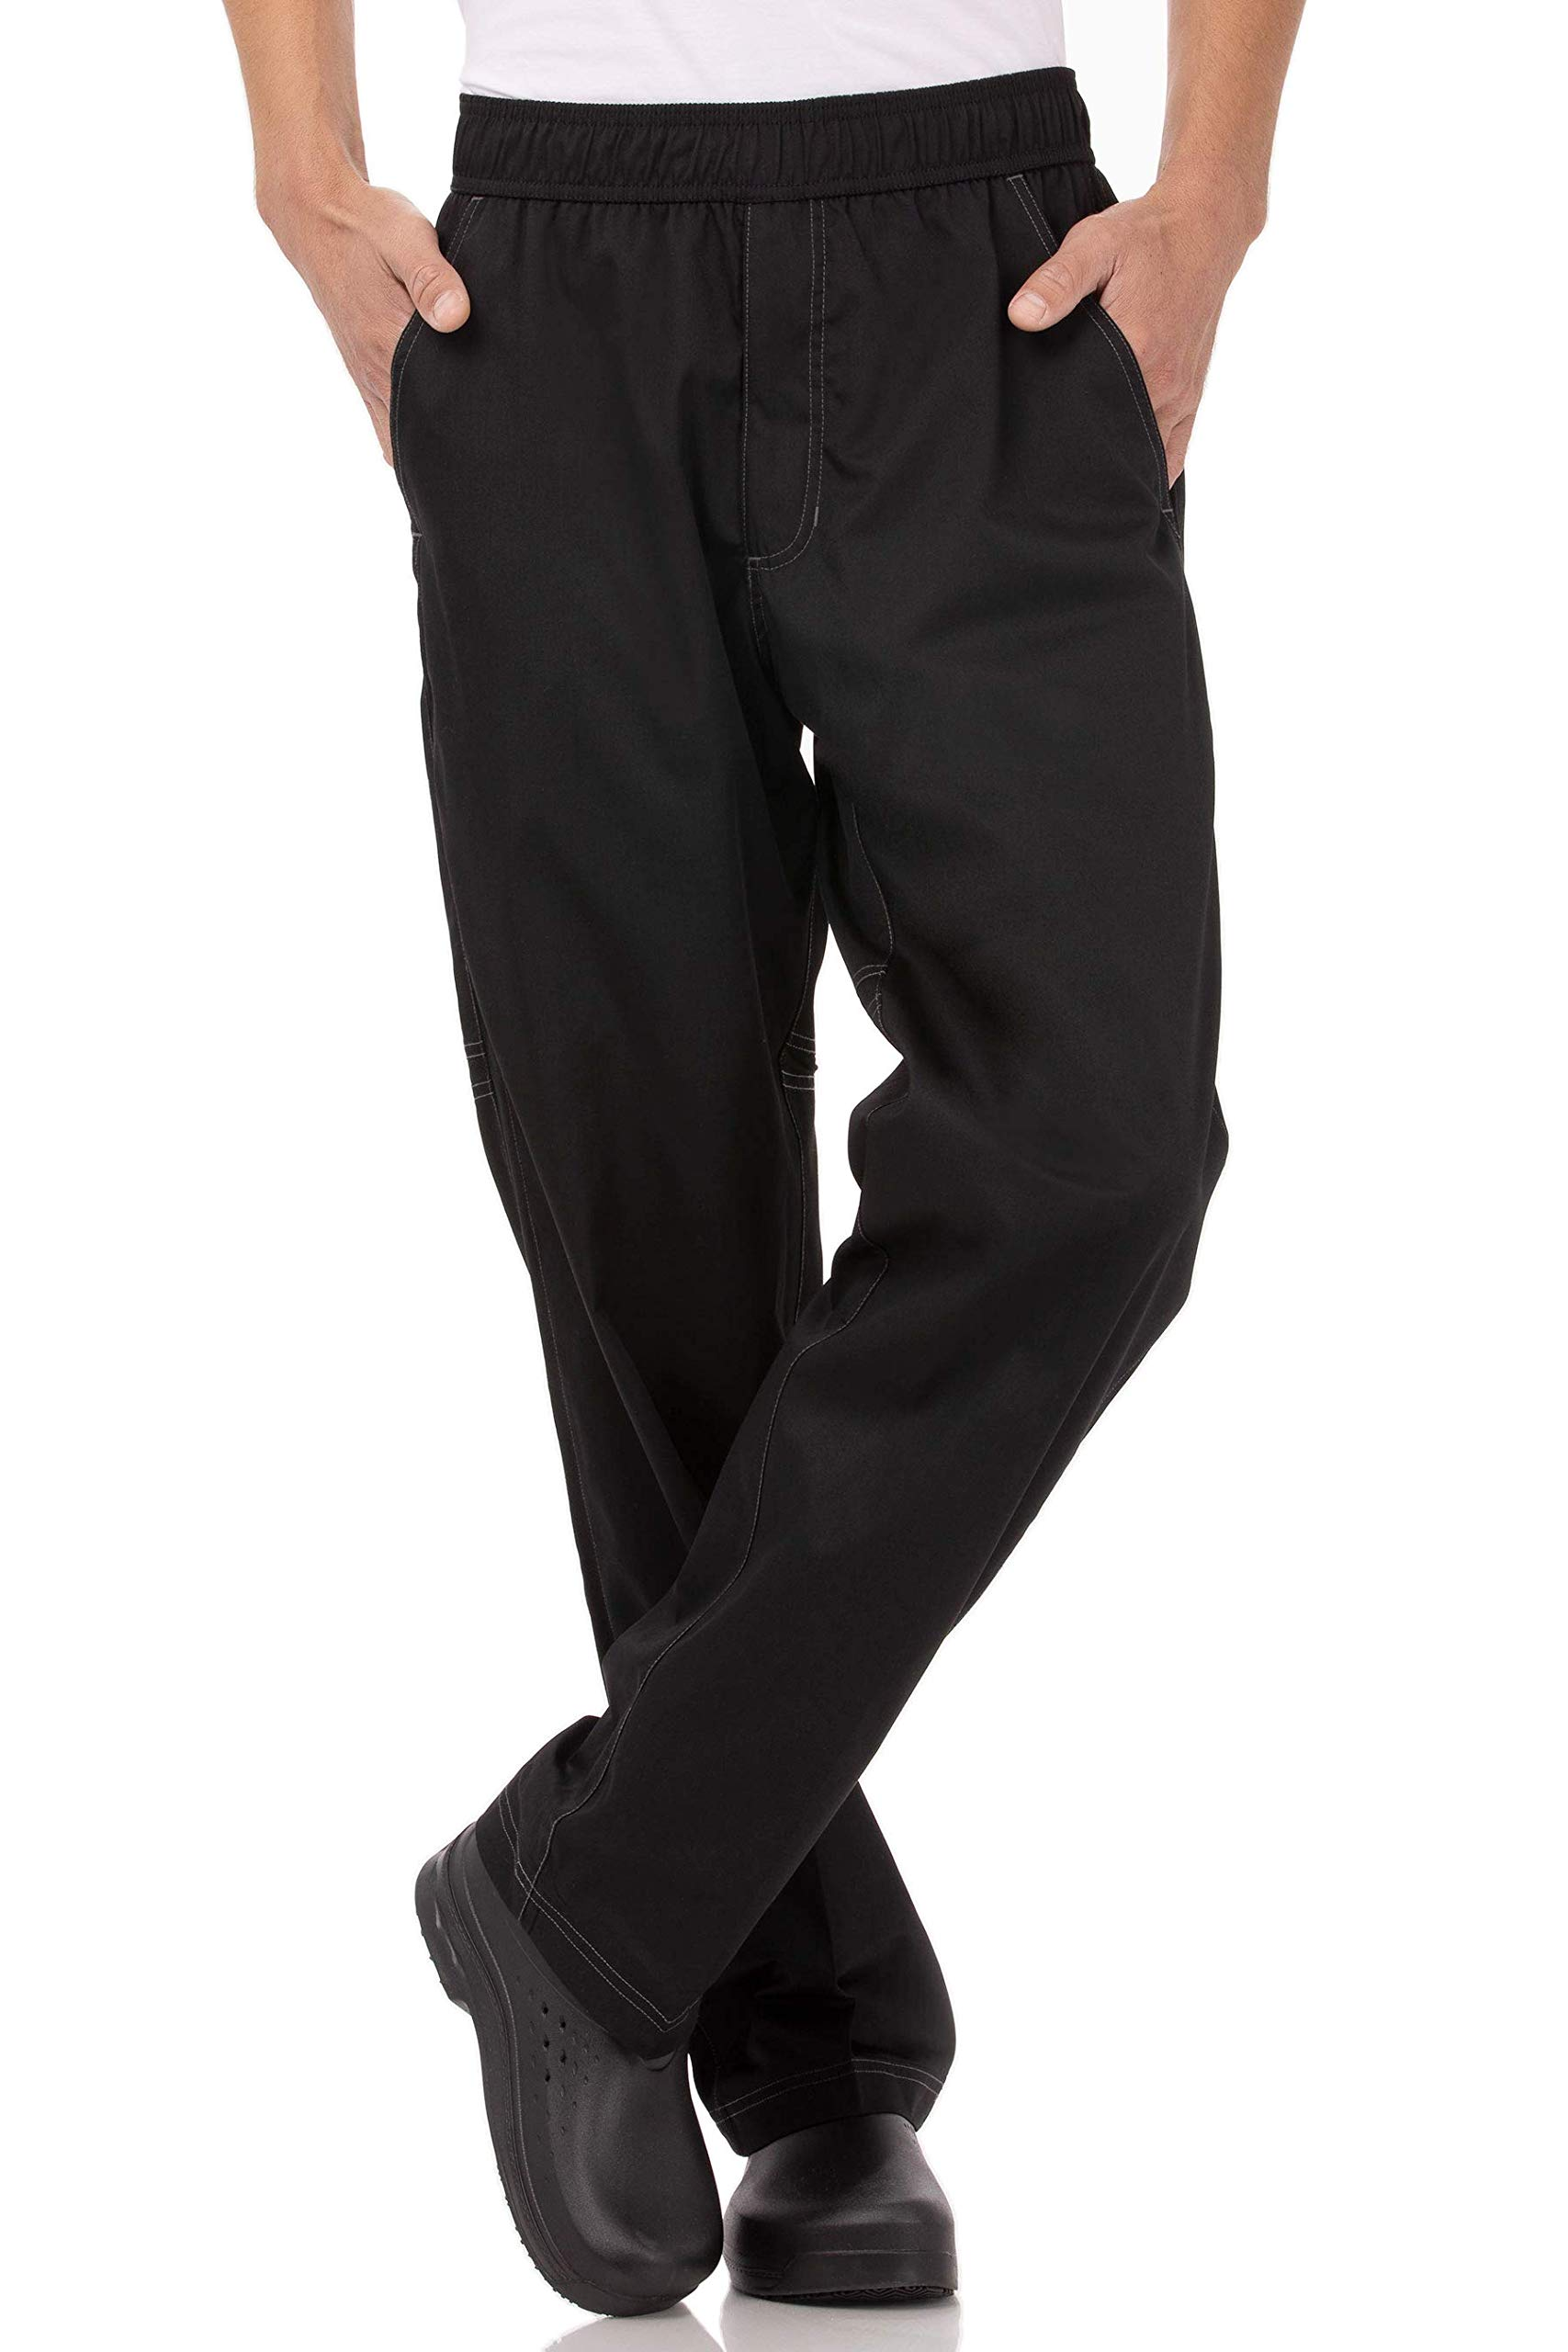 Chef Works Men's Cool Vent Baggy Chef Pants, Black, Medium by Chef Works